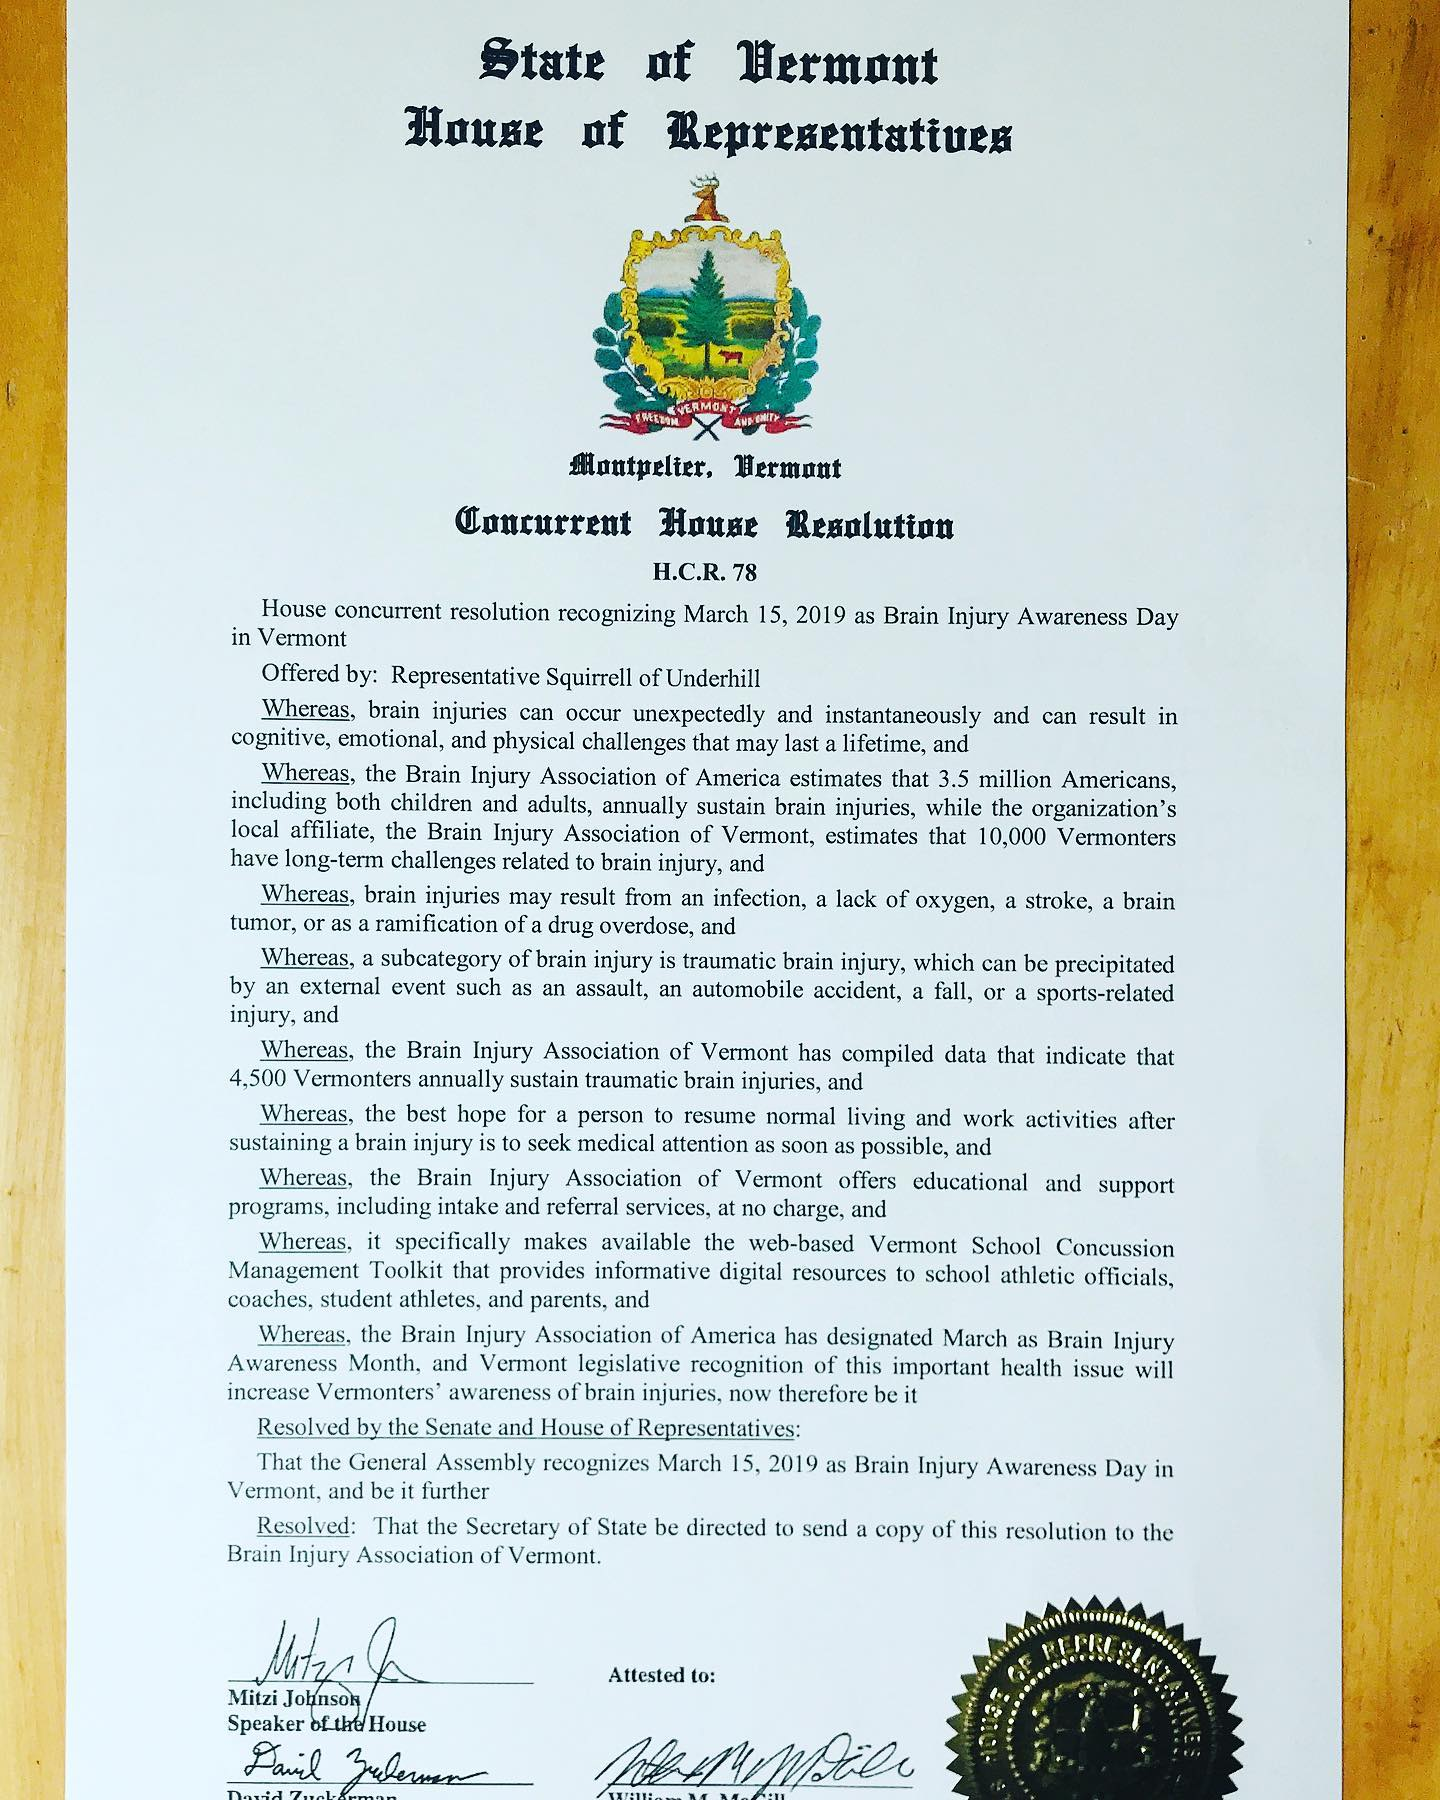 Resolution HCR 78 officially declaring March 15th, 2019 as Brain Injury Awareness day in Vermont